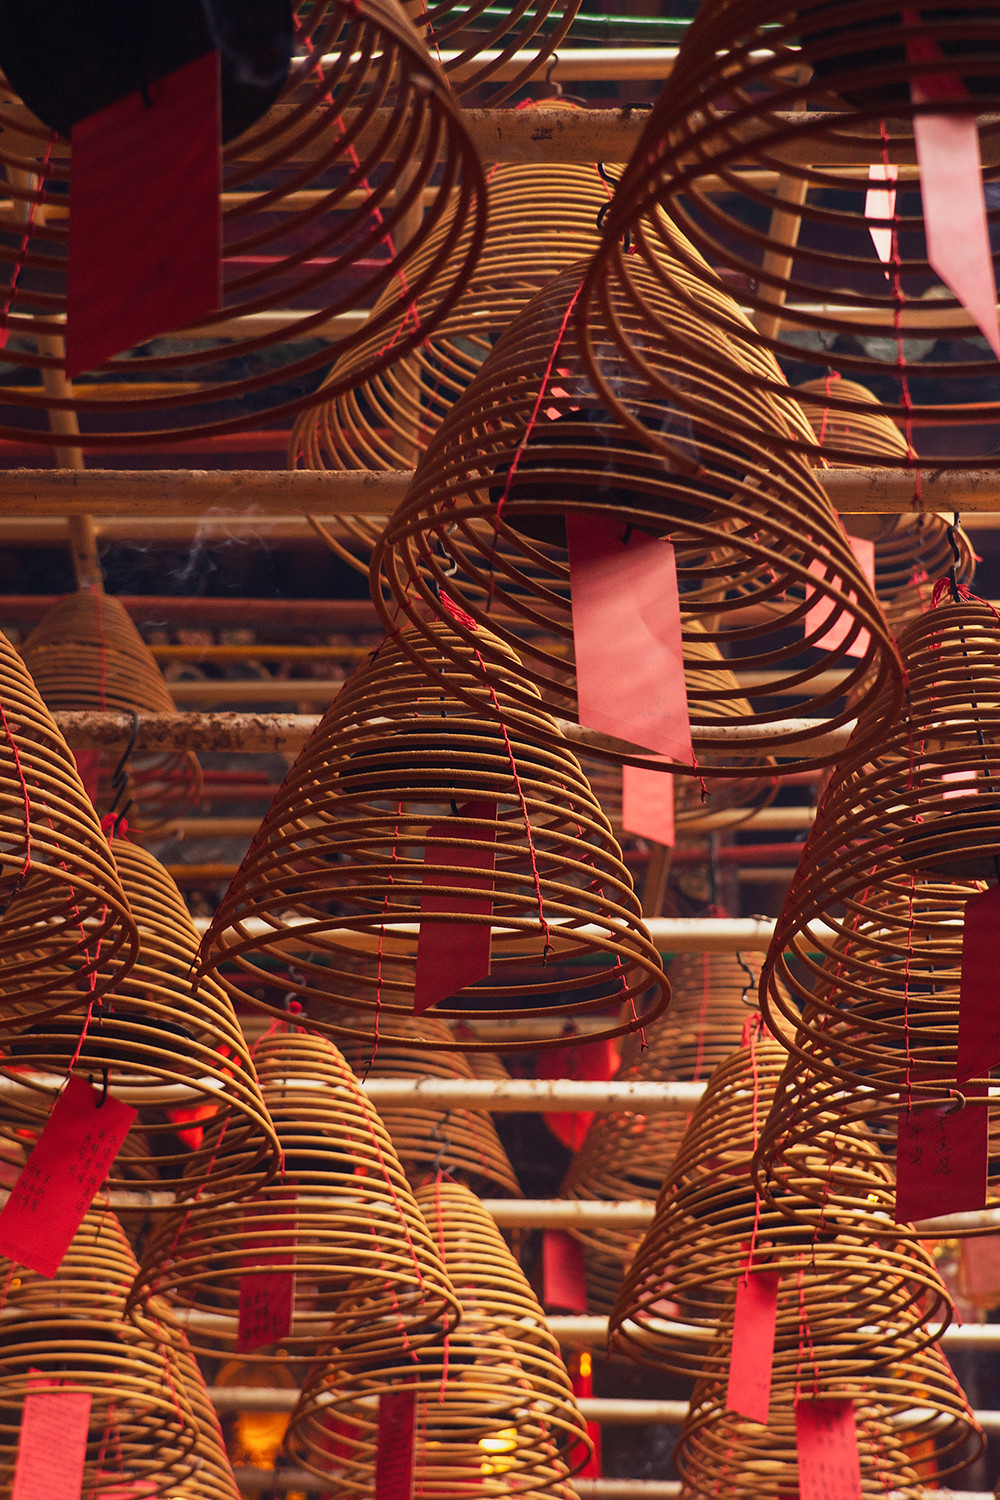 12hongkong-manmotemple-incense-travel